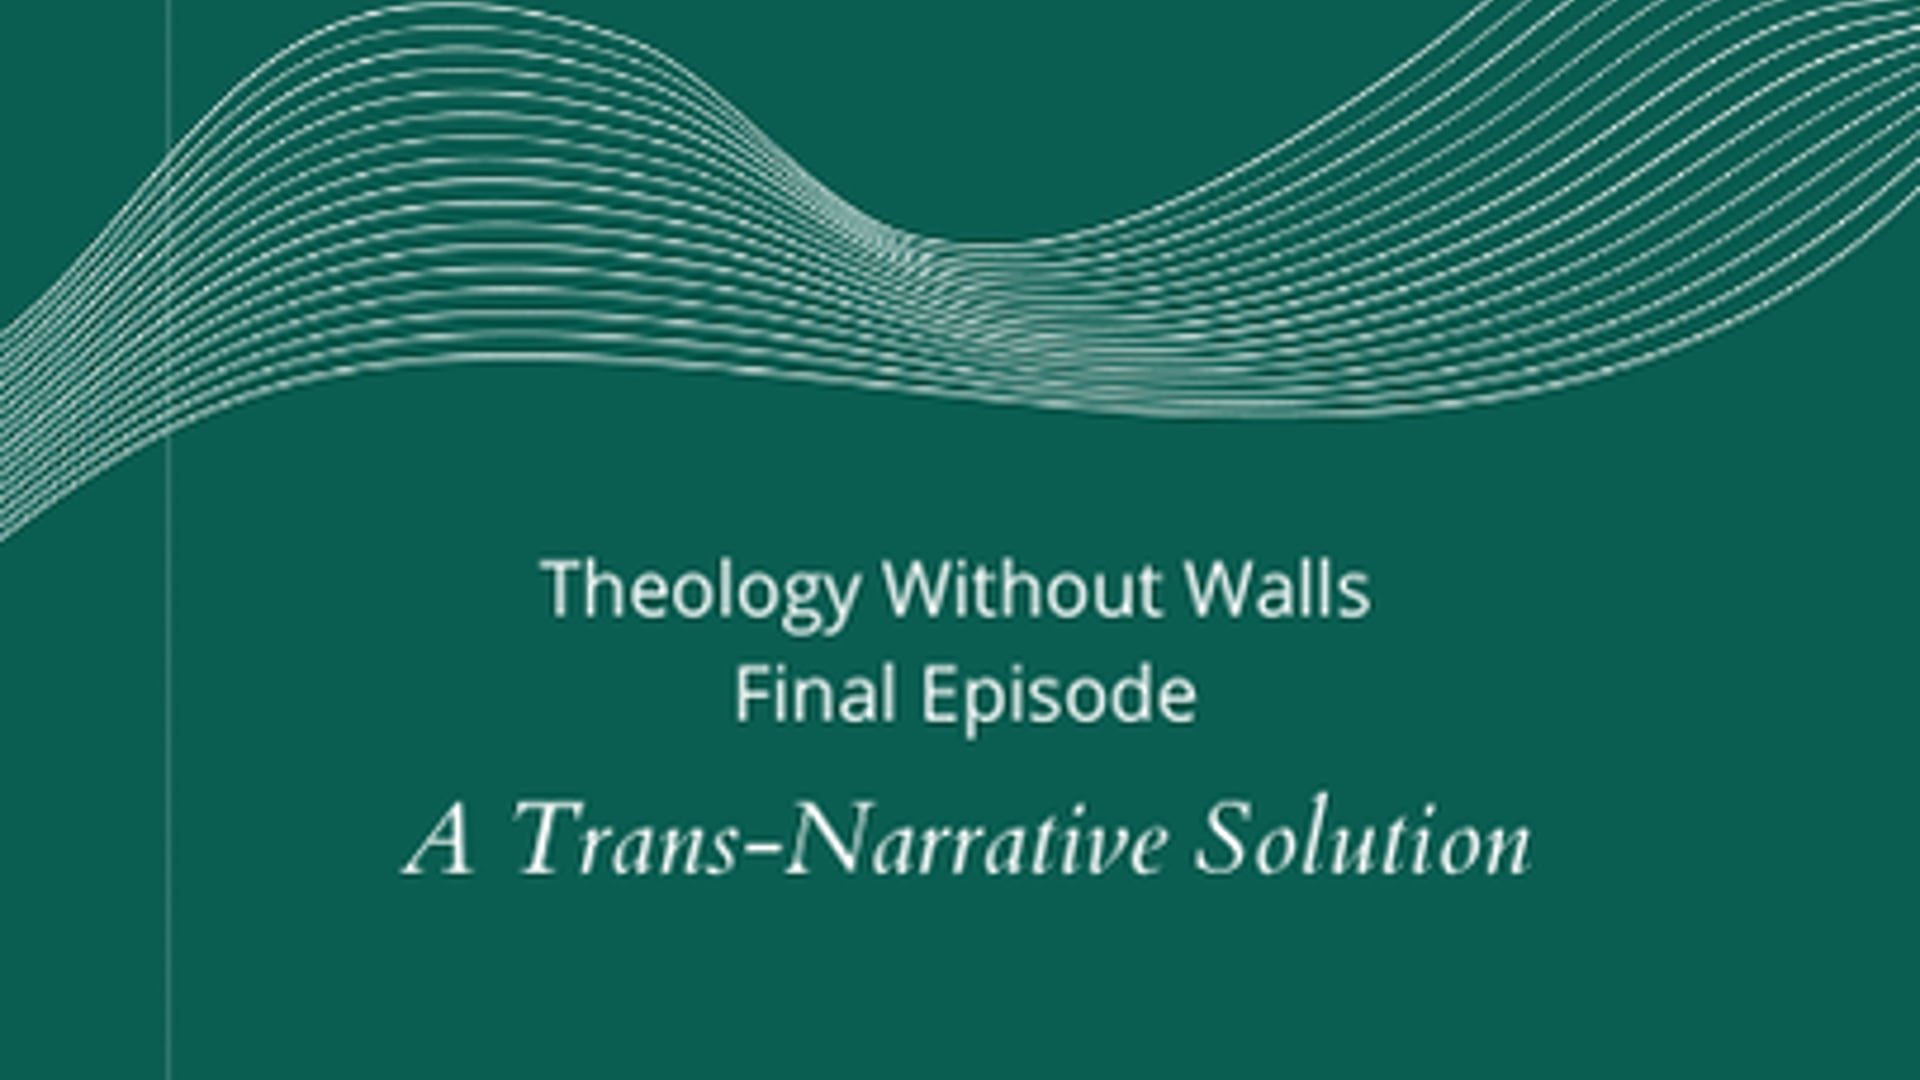 Theology Without Walls - A Trans-Narrative Solution